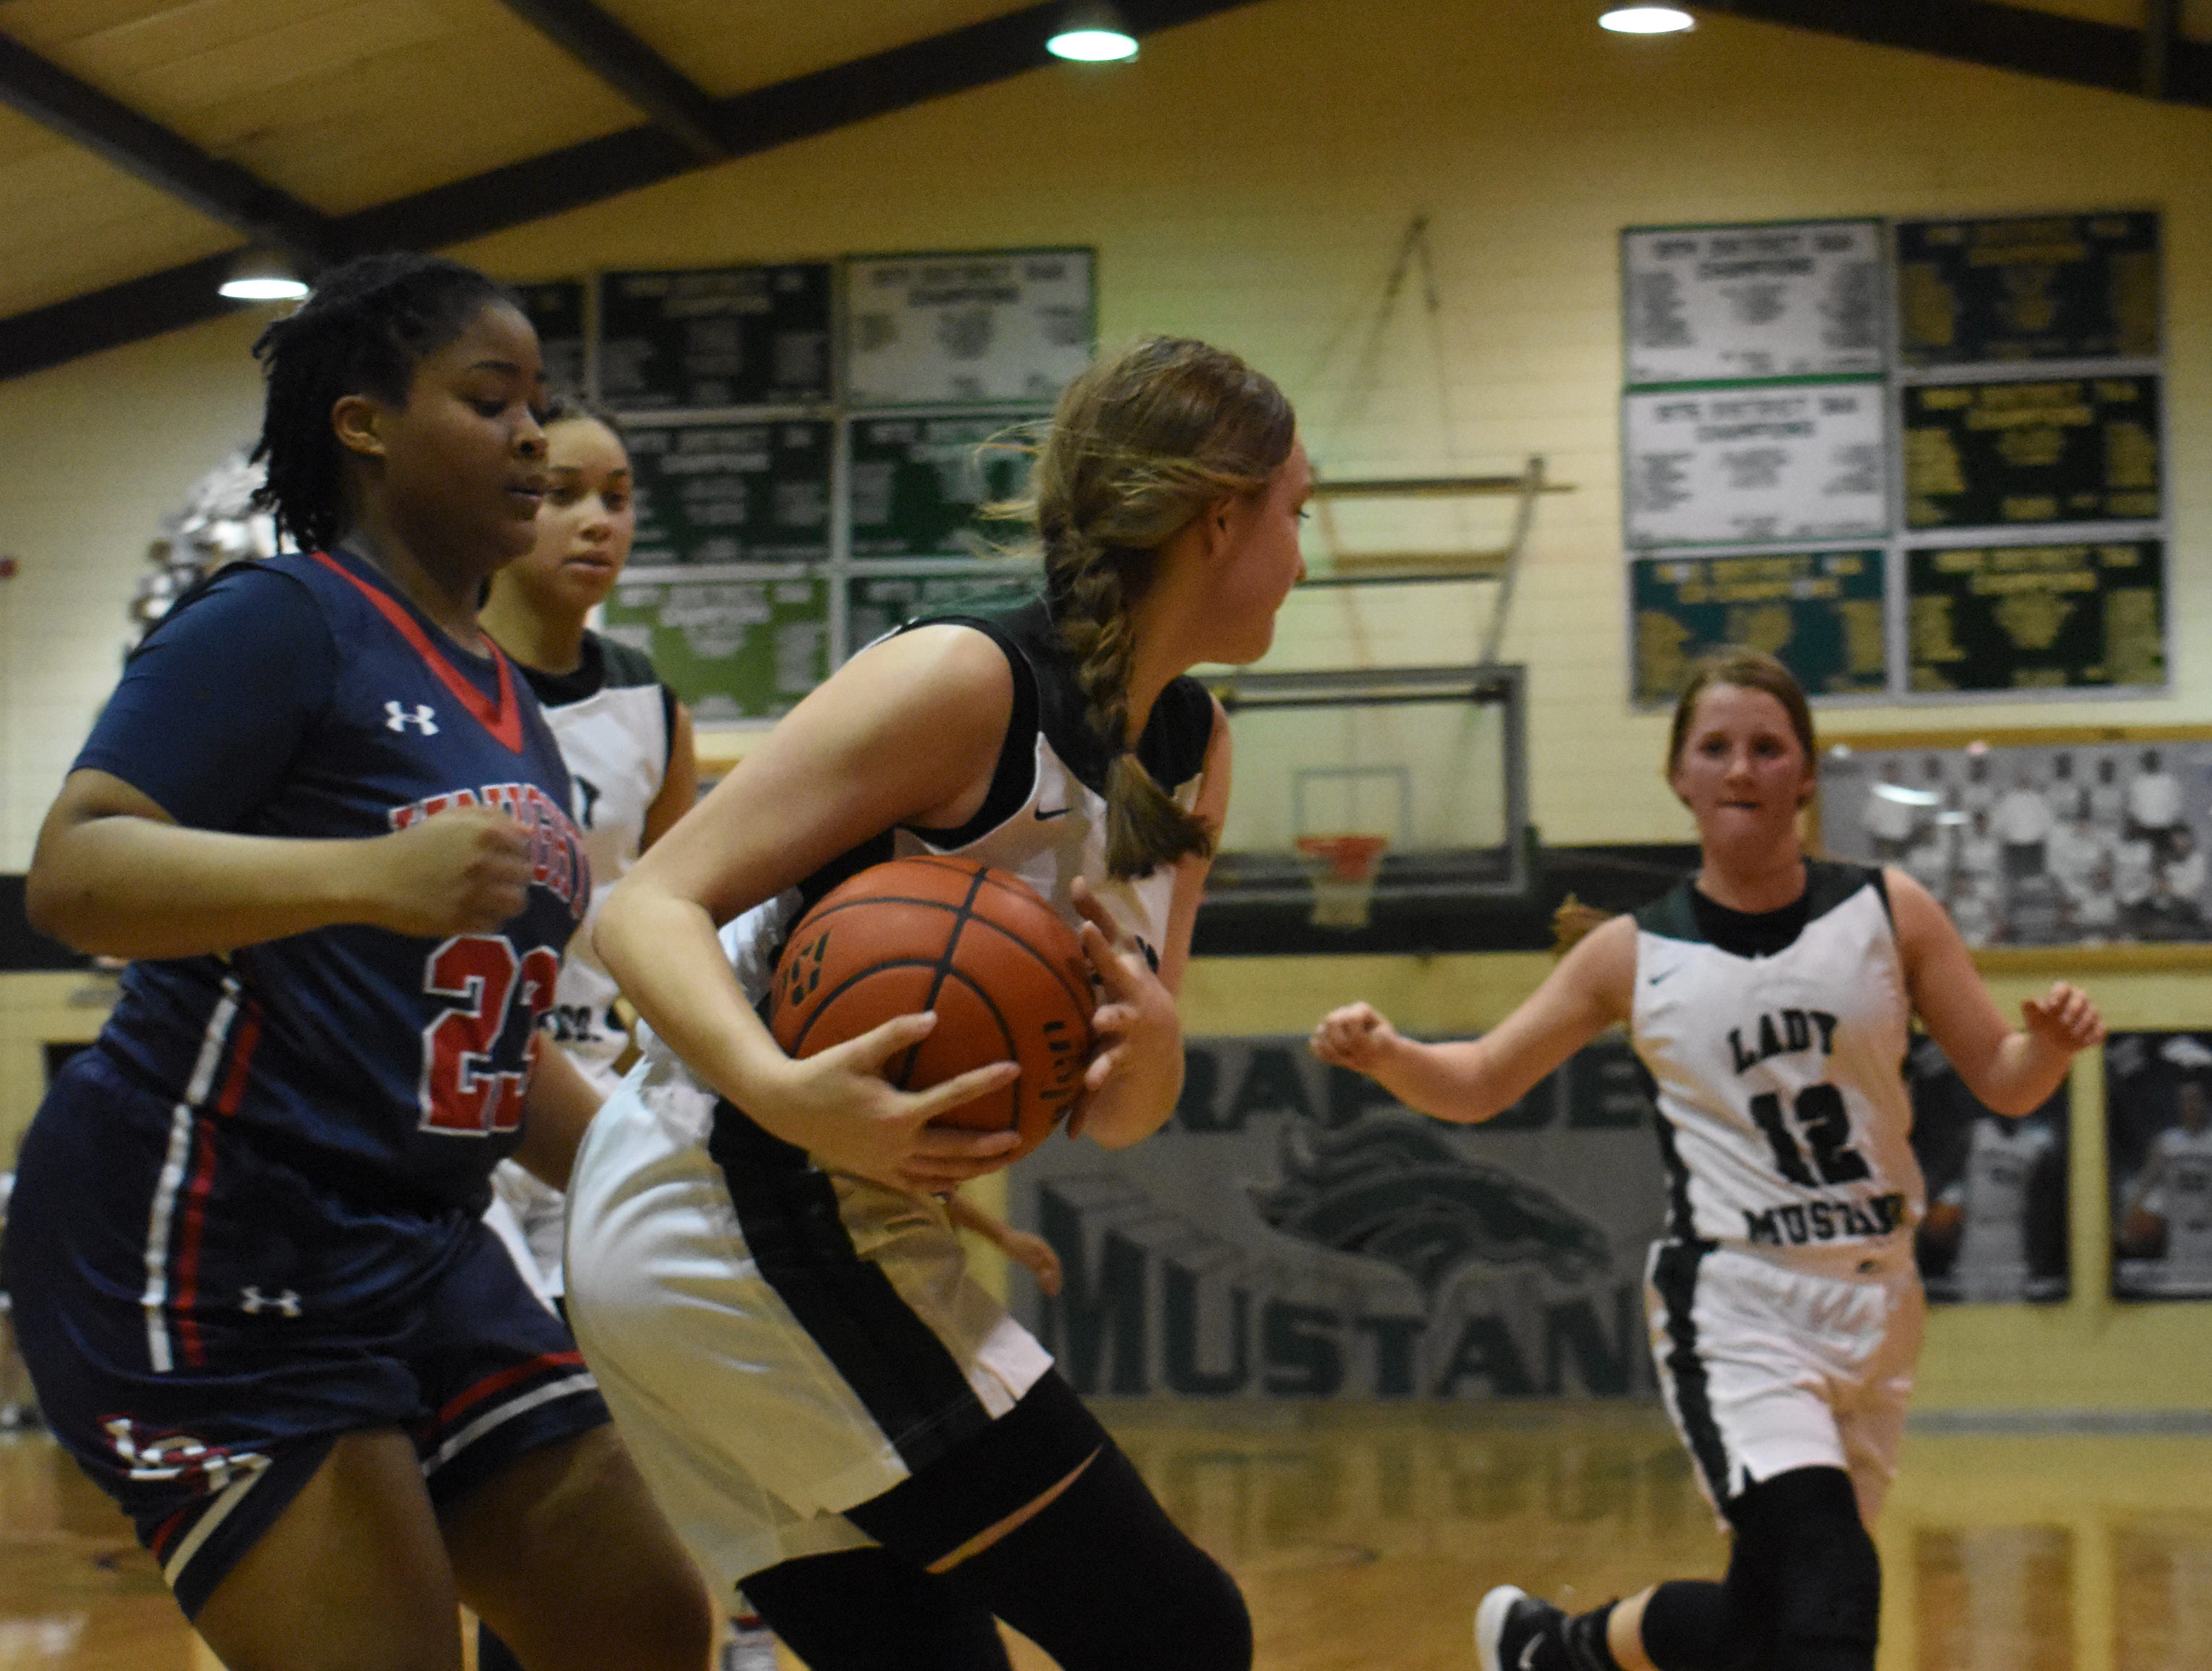 The Rapides High School Lady Mustangs defeated Lafayette Christian 65-56 Thursday, Jan. 24, 2019.